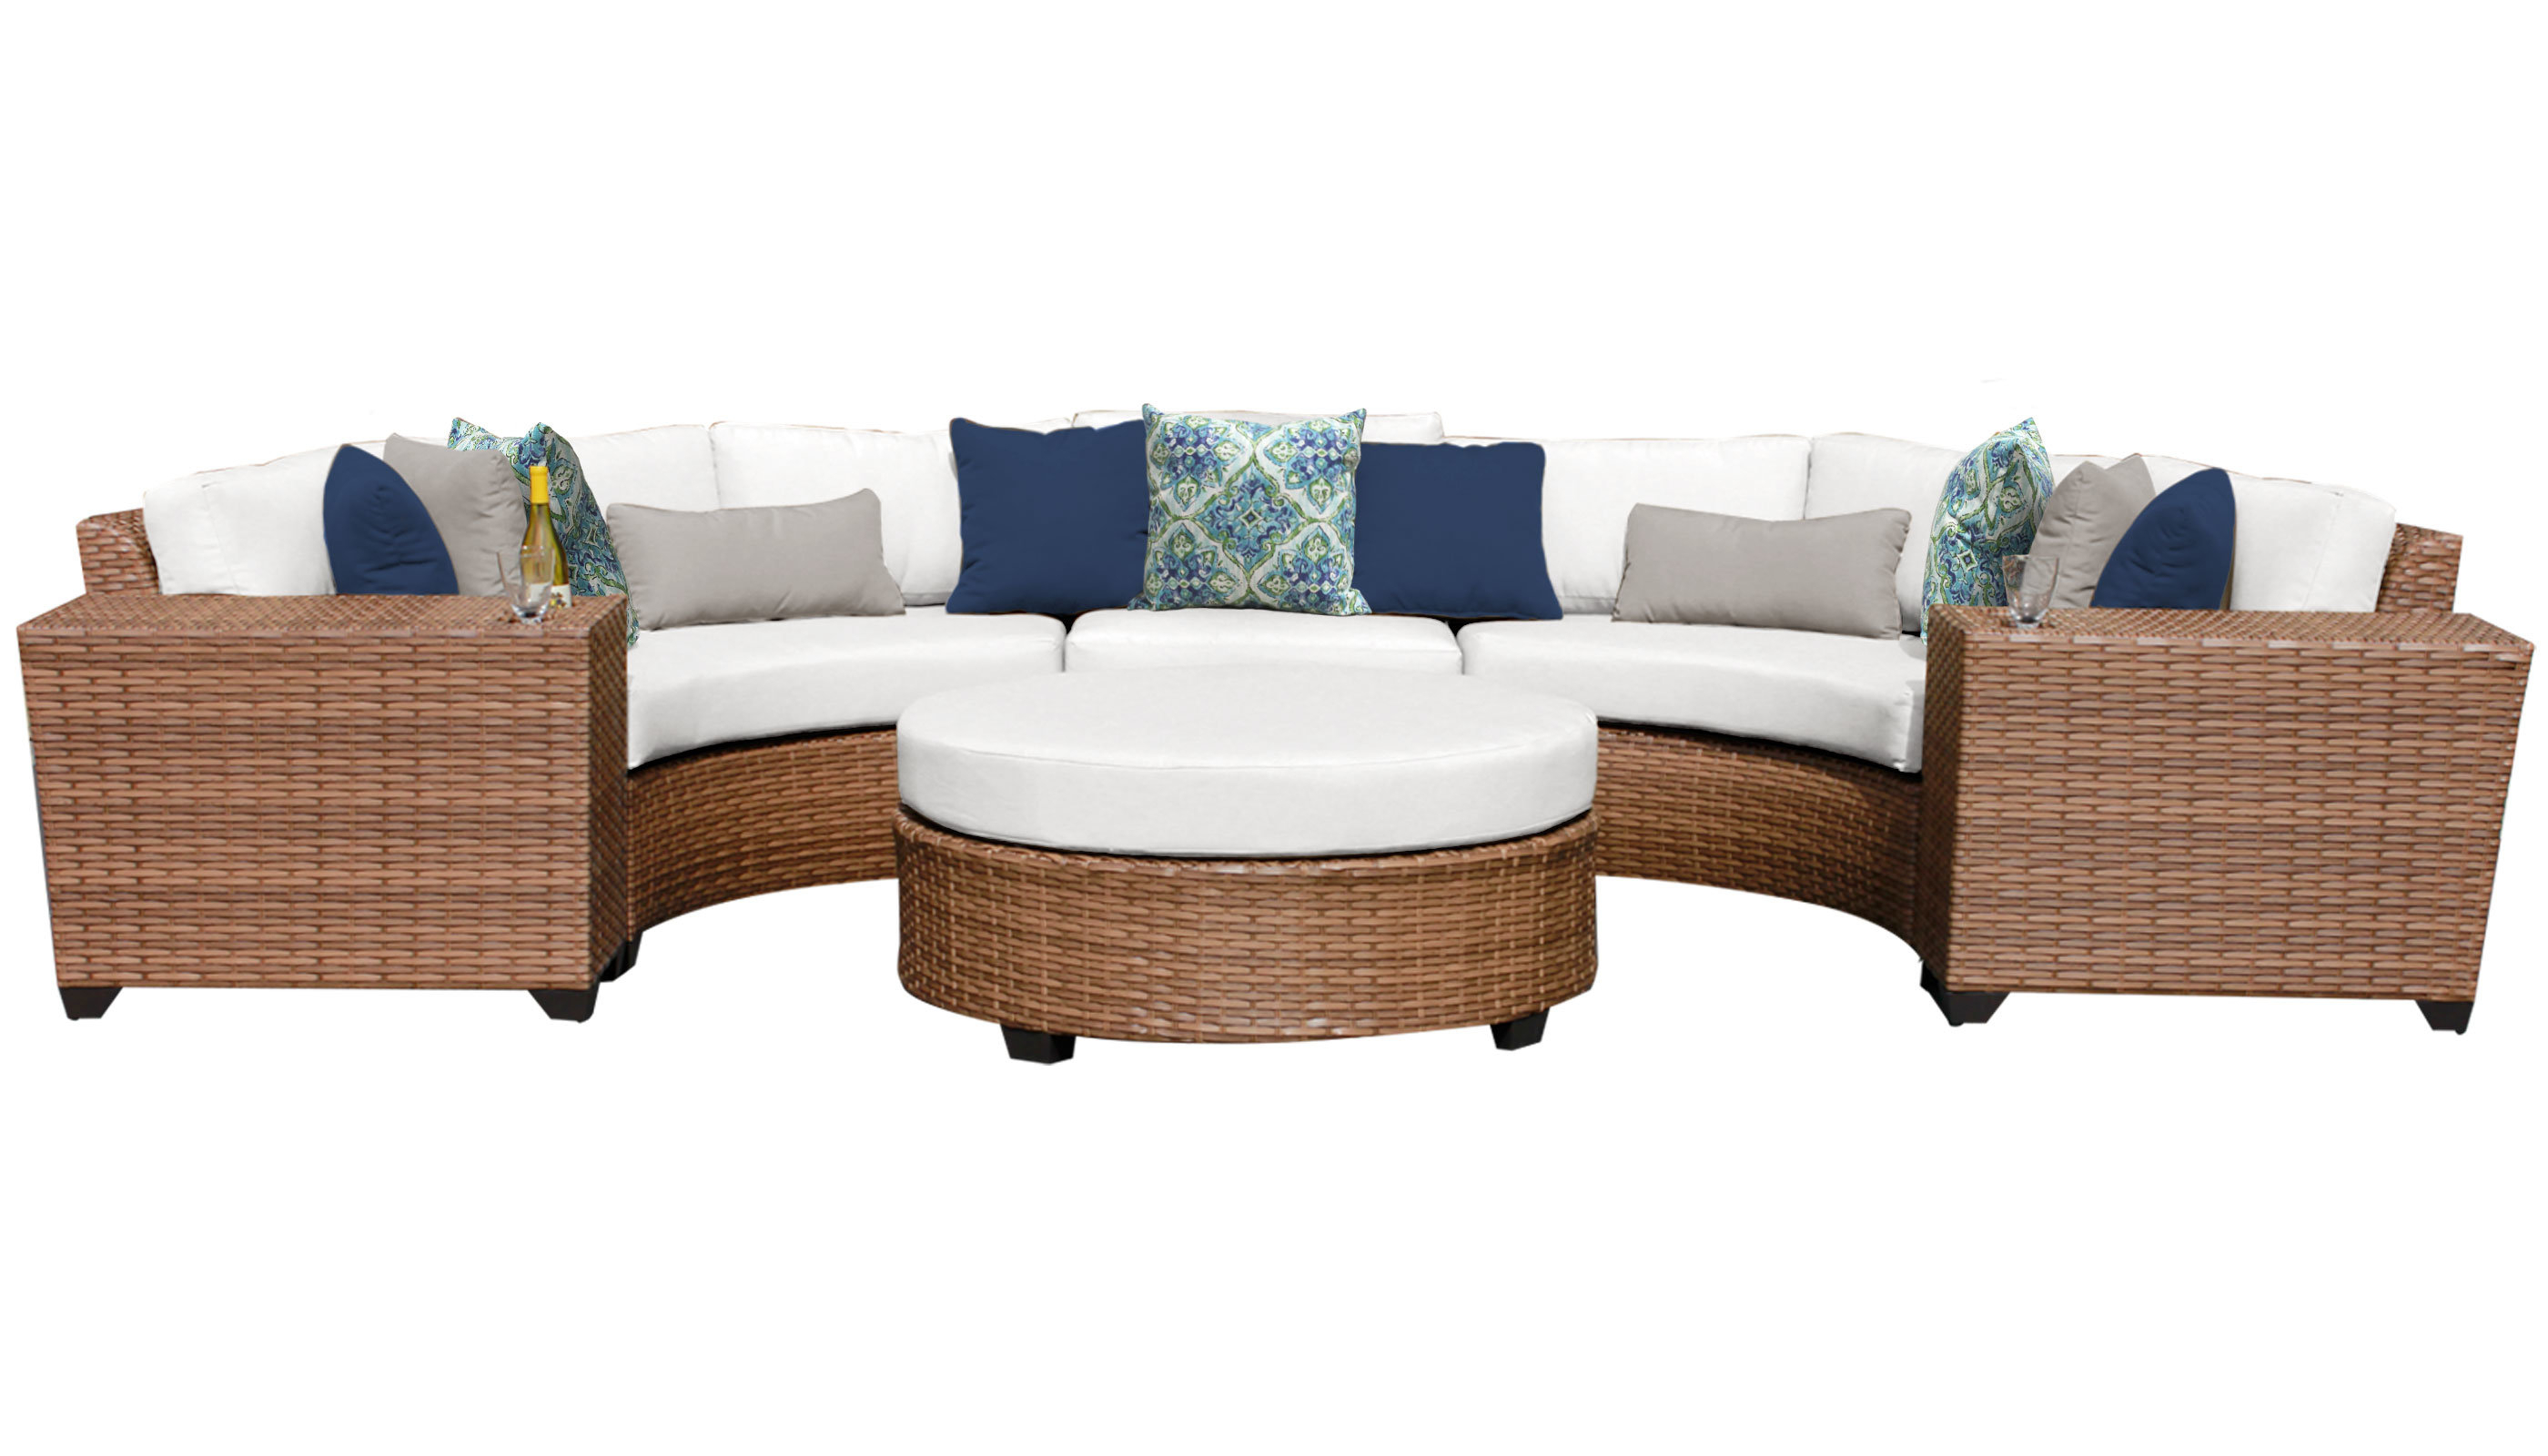 Preferred Waterbury Curved Armless Sofa With Cushions Pertaining To Waterbury 6 Piece Seating Group With Cushions (View 9 of 20)